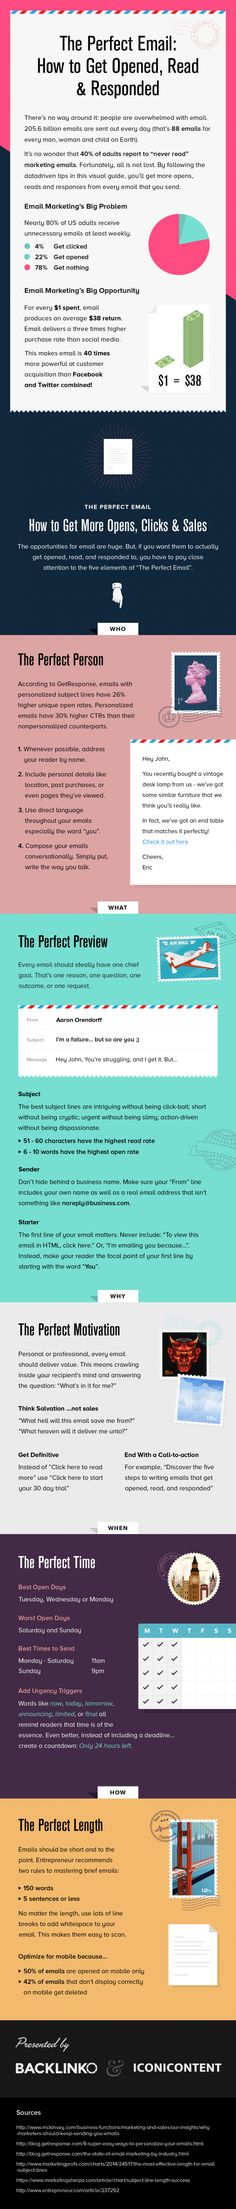 How to Write the Perfect Business Email Using Just 5 Questions (Infographic) | Inc.com